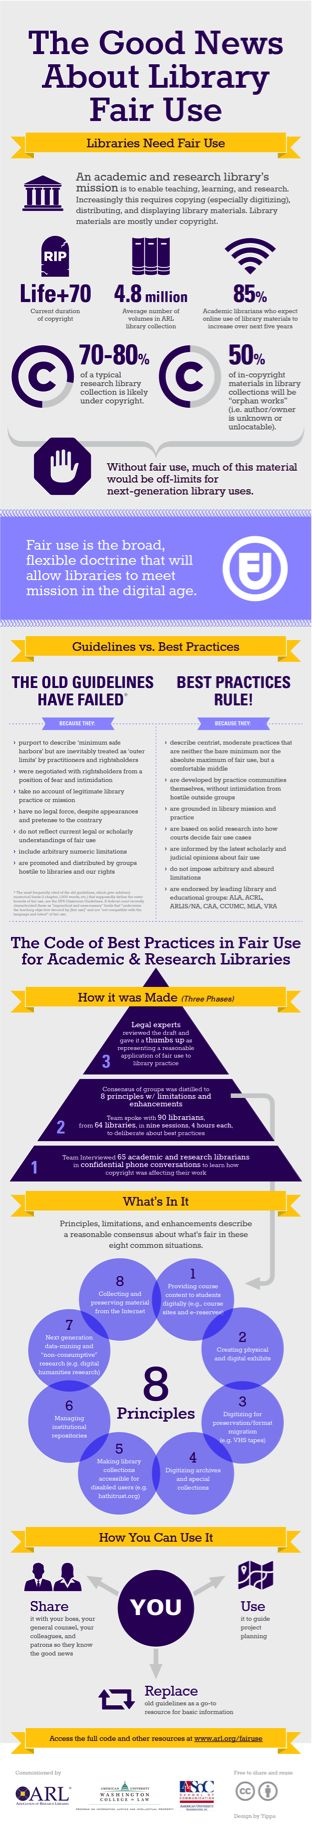 fairuse Fair Use in Libraries: The Infographic